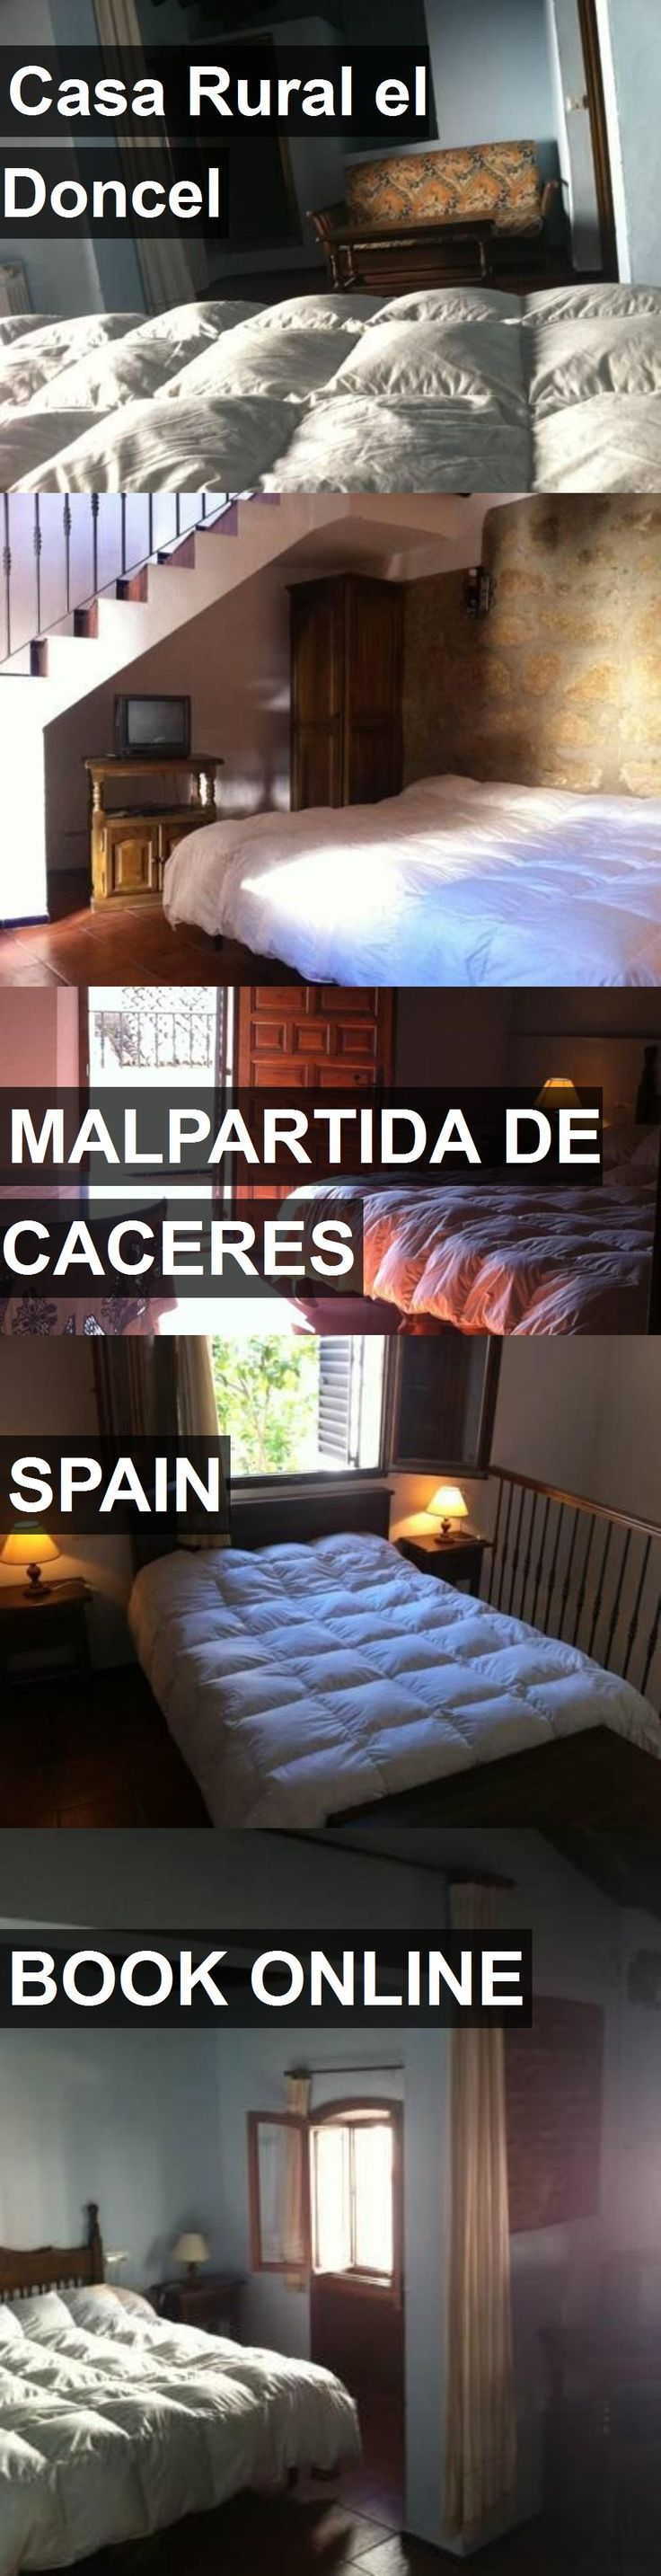 Hotel Casa Rural el Doncel in Malpartida de Caceres, Spain. For more information, photos, reviews and best prices please follow the link. #Spain #MalpartidadeCaceres #CasaRuralelDoncel #hotel #travel #vacation